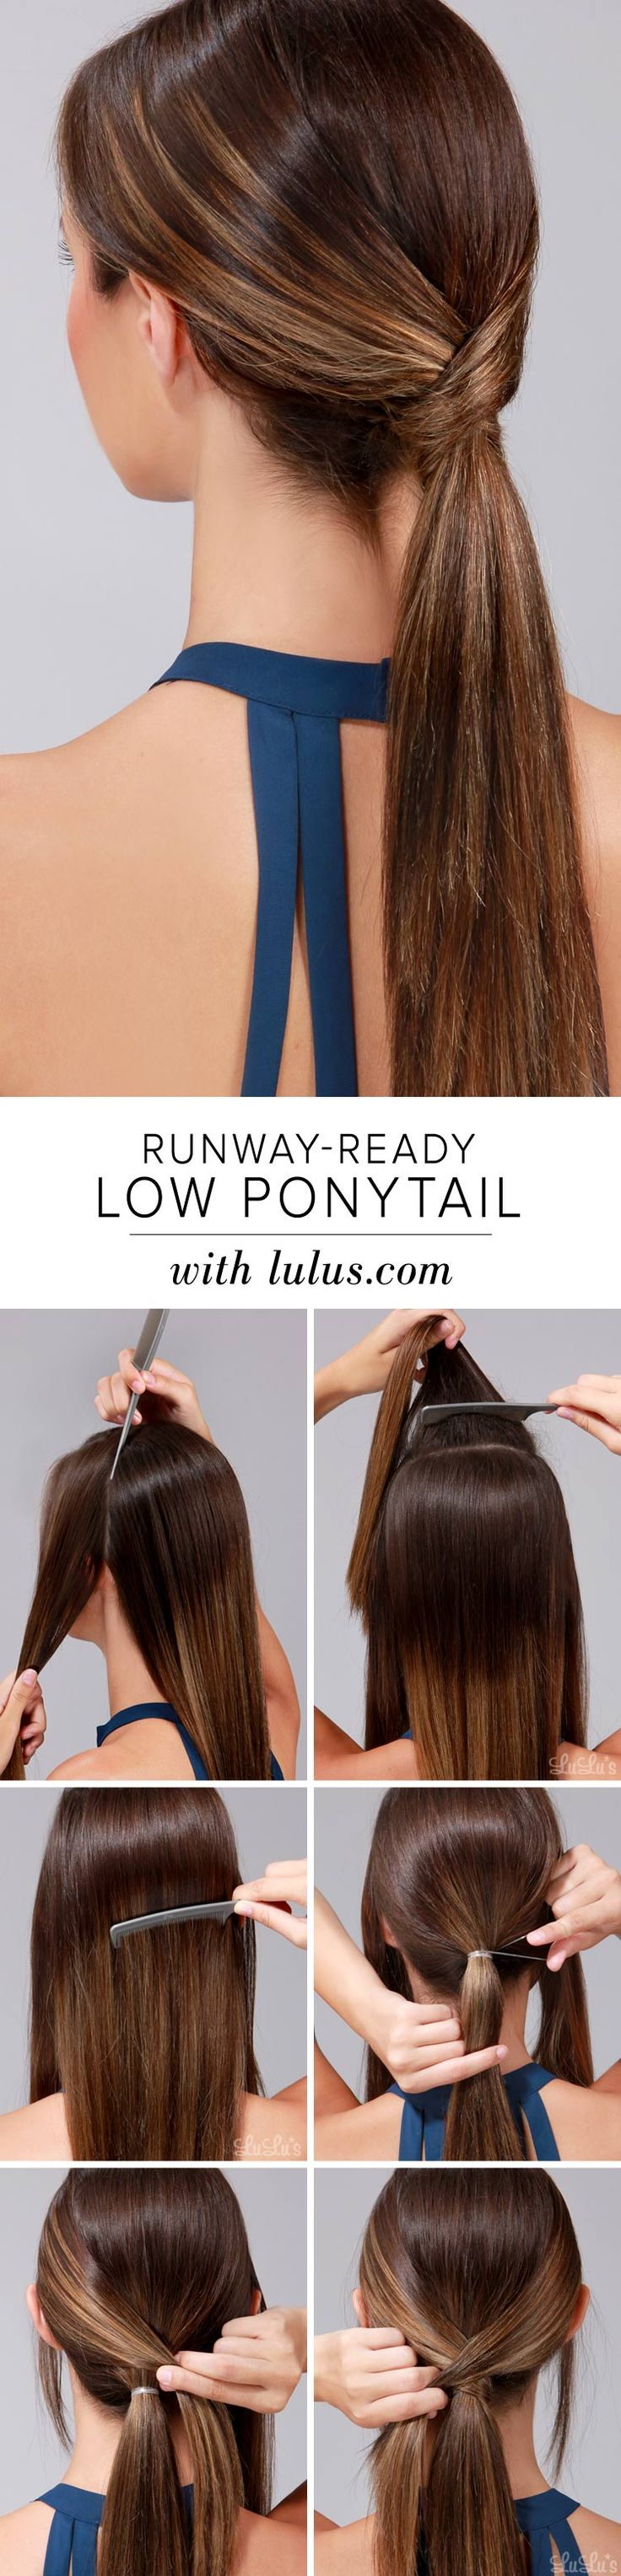 From Classy to Cute: 25+ Easy Hairstyles for Long Hair